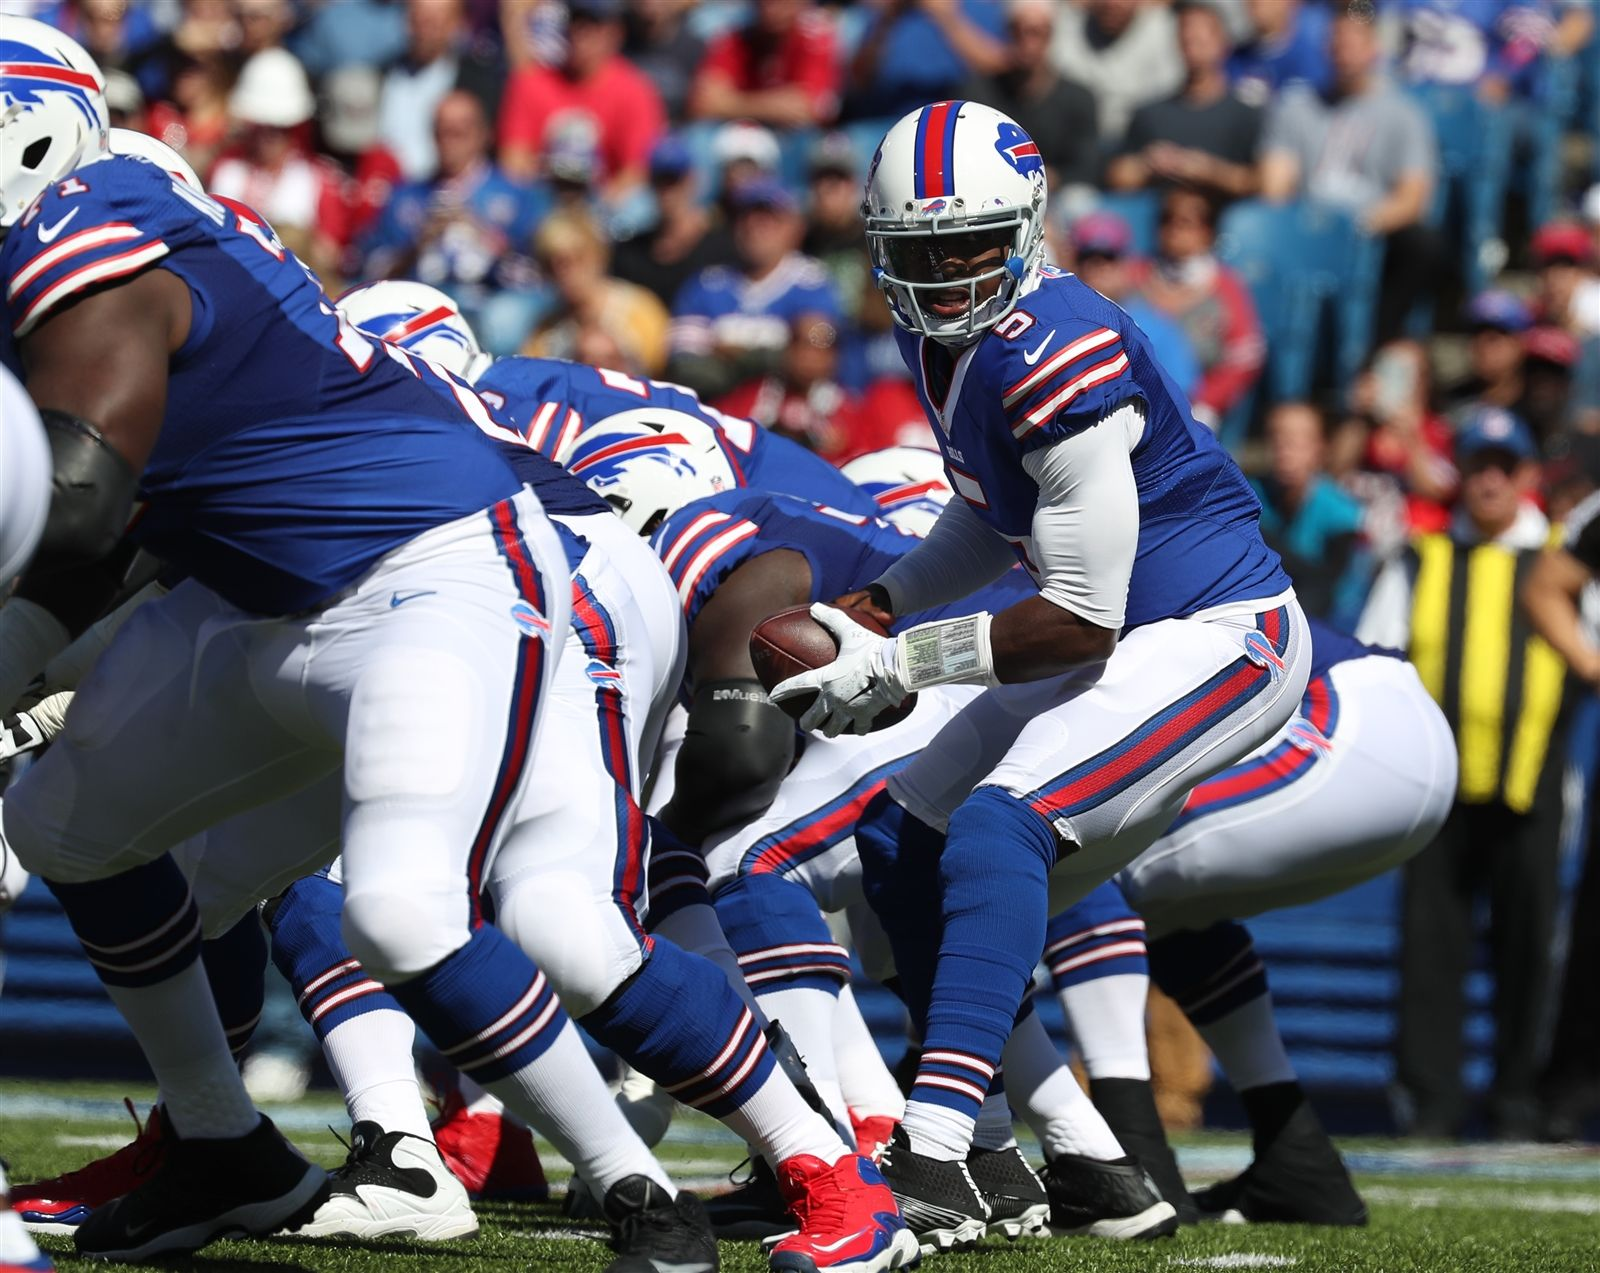 Buffalo Bills quarterback Tyrod Taylor takes a snap in the first quarter against the Arizona Cardinals.